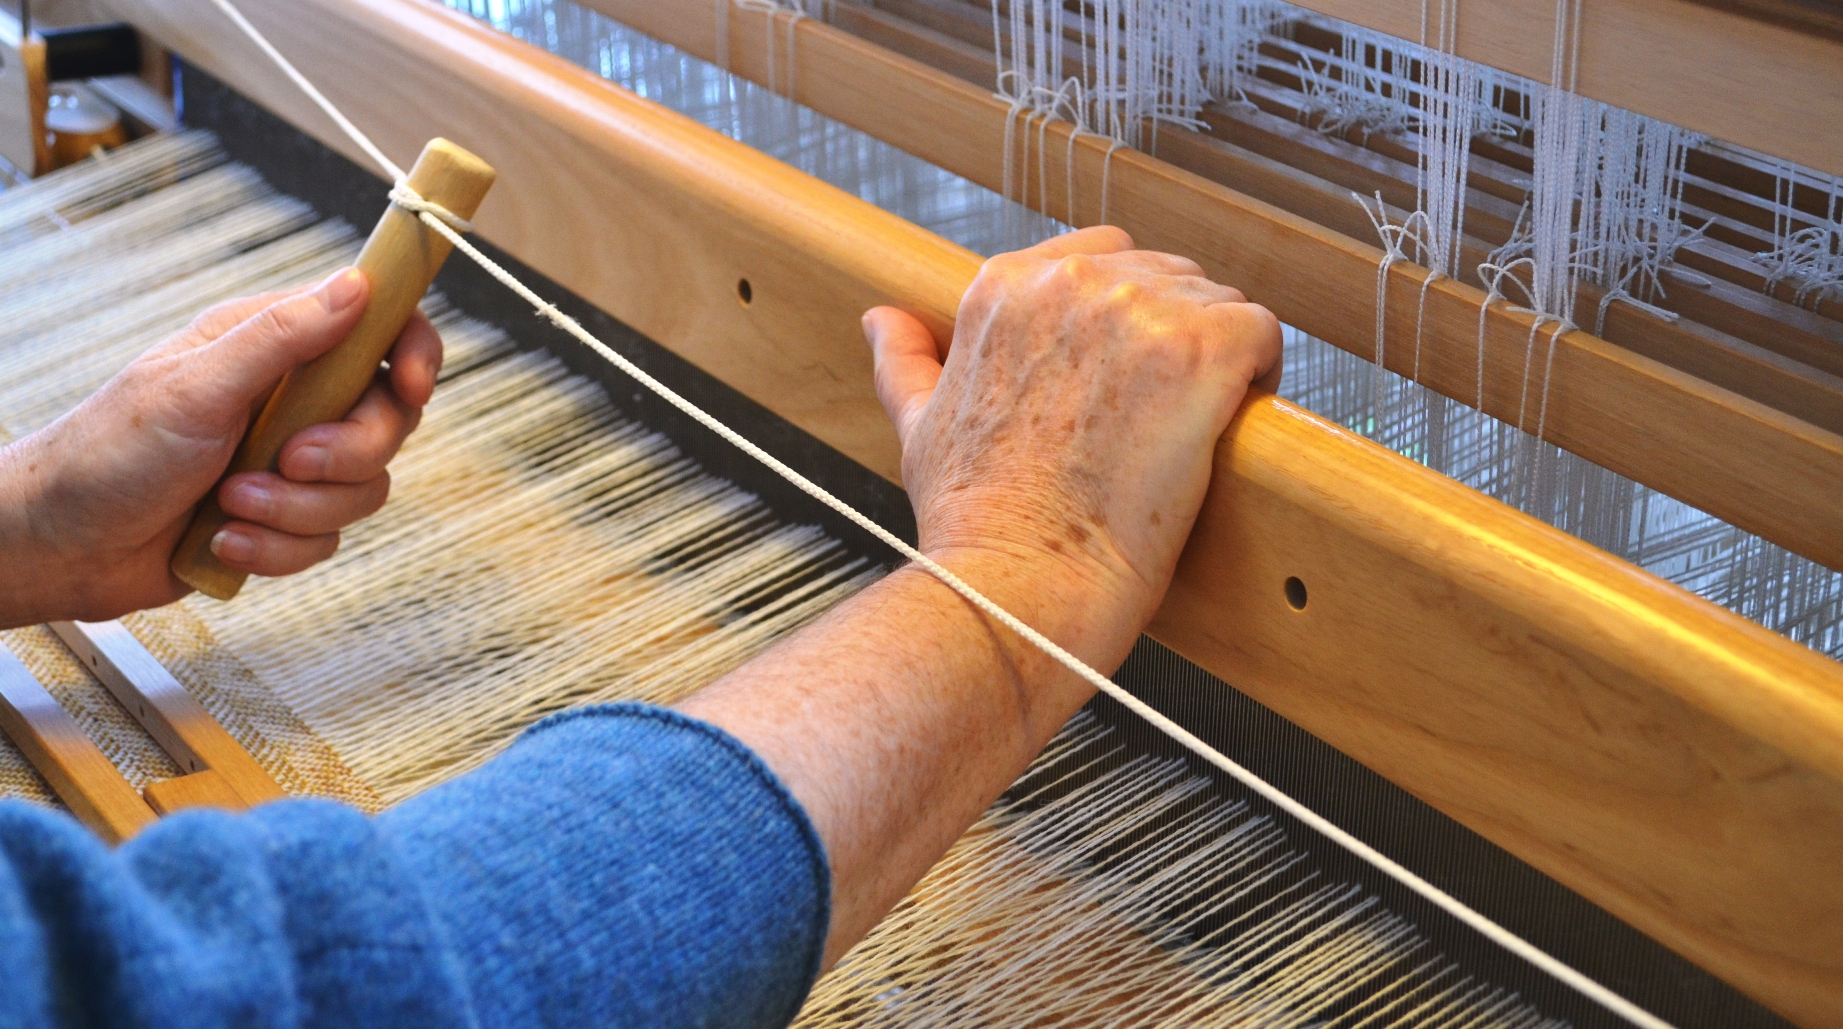 Weaving a lambswool throw